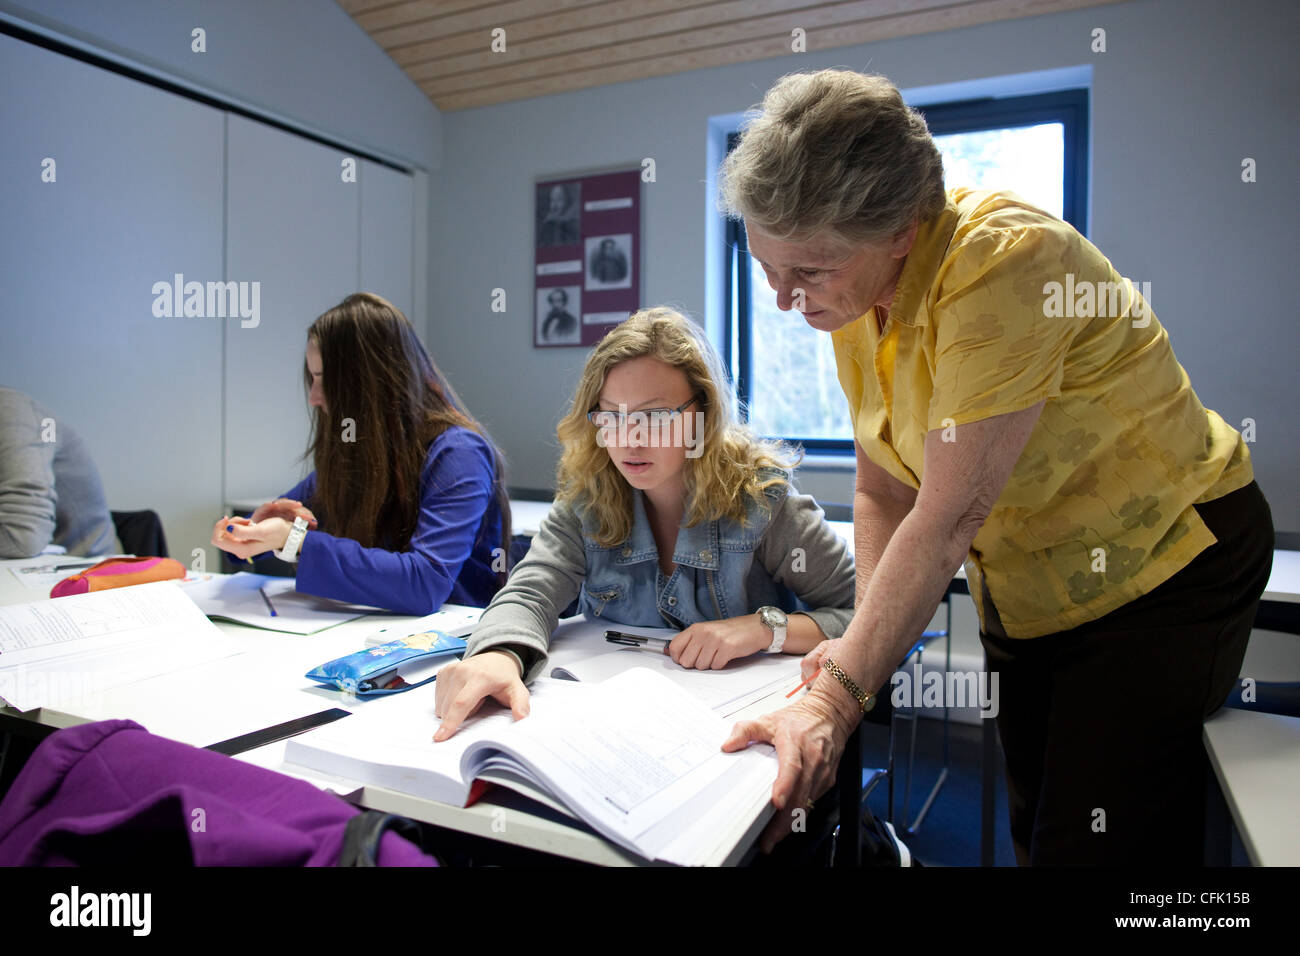 A-Level students in classroom at EF International Academy Oxford, England, UK - Stock Image